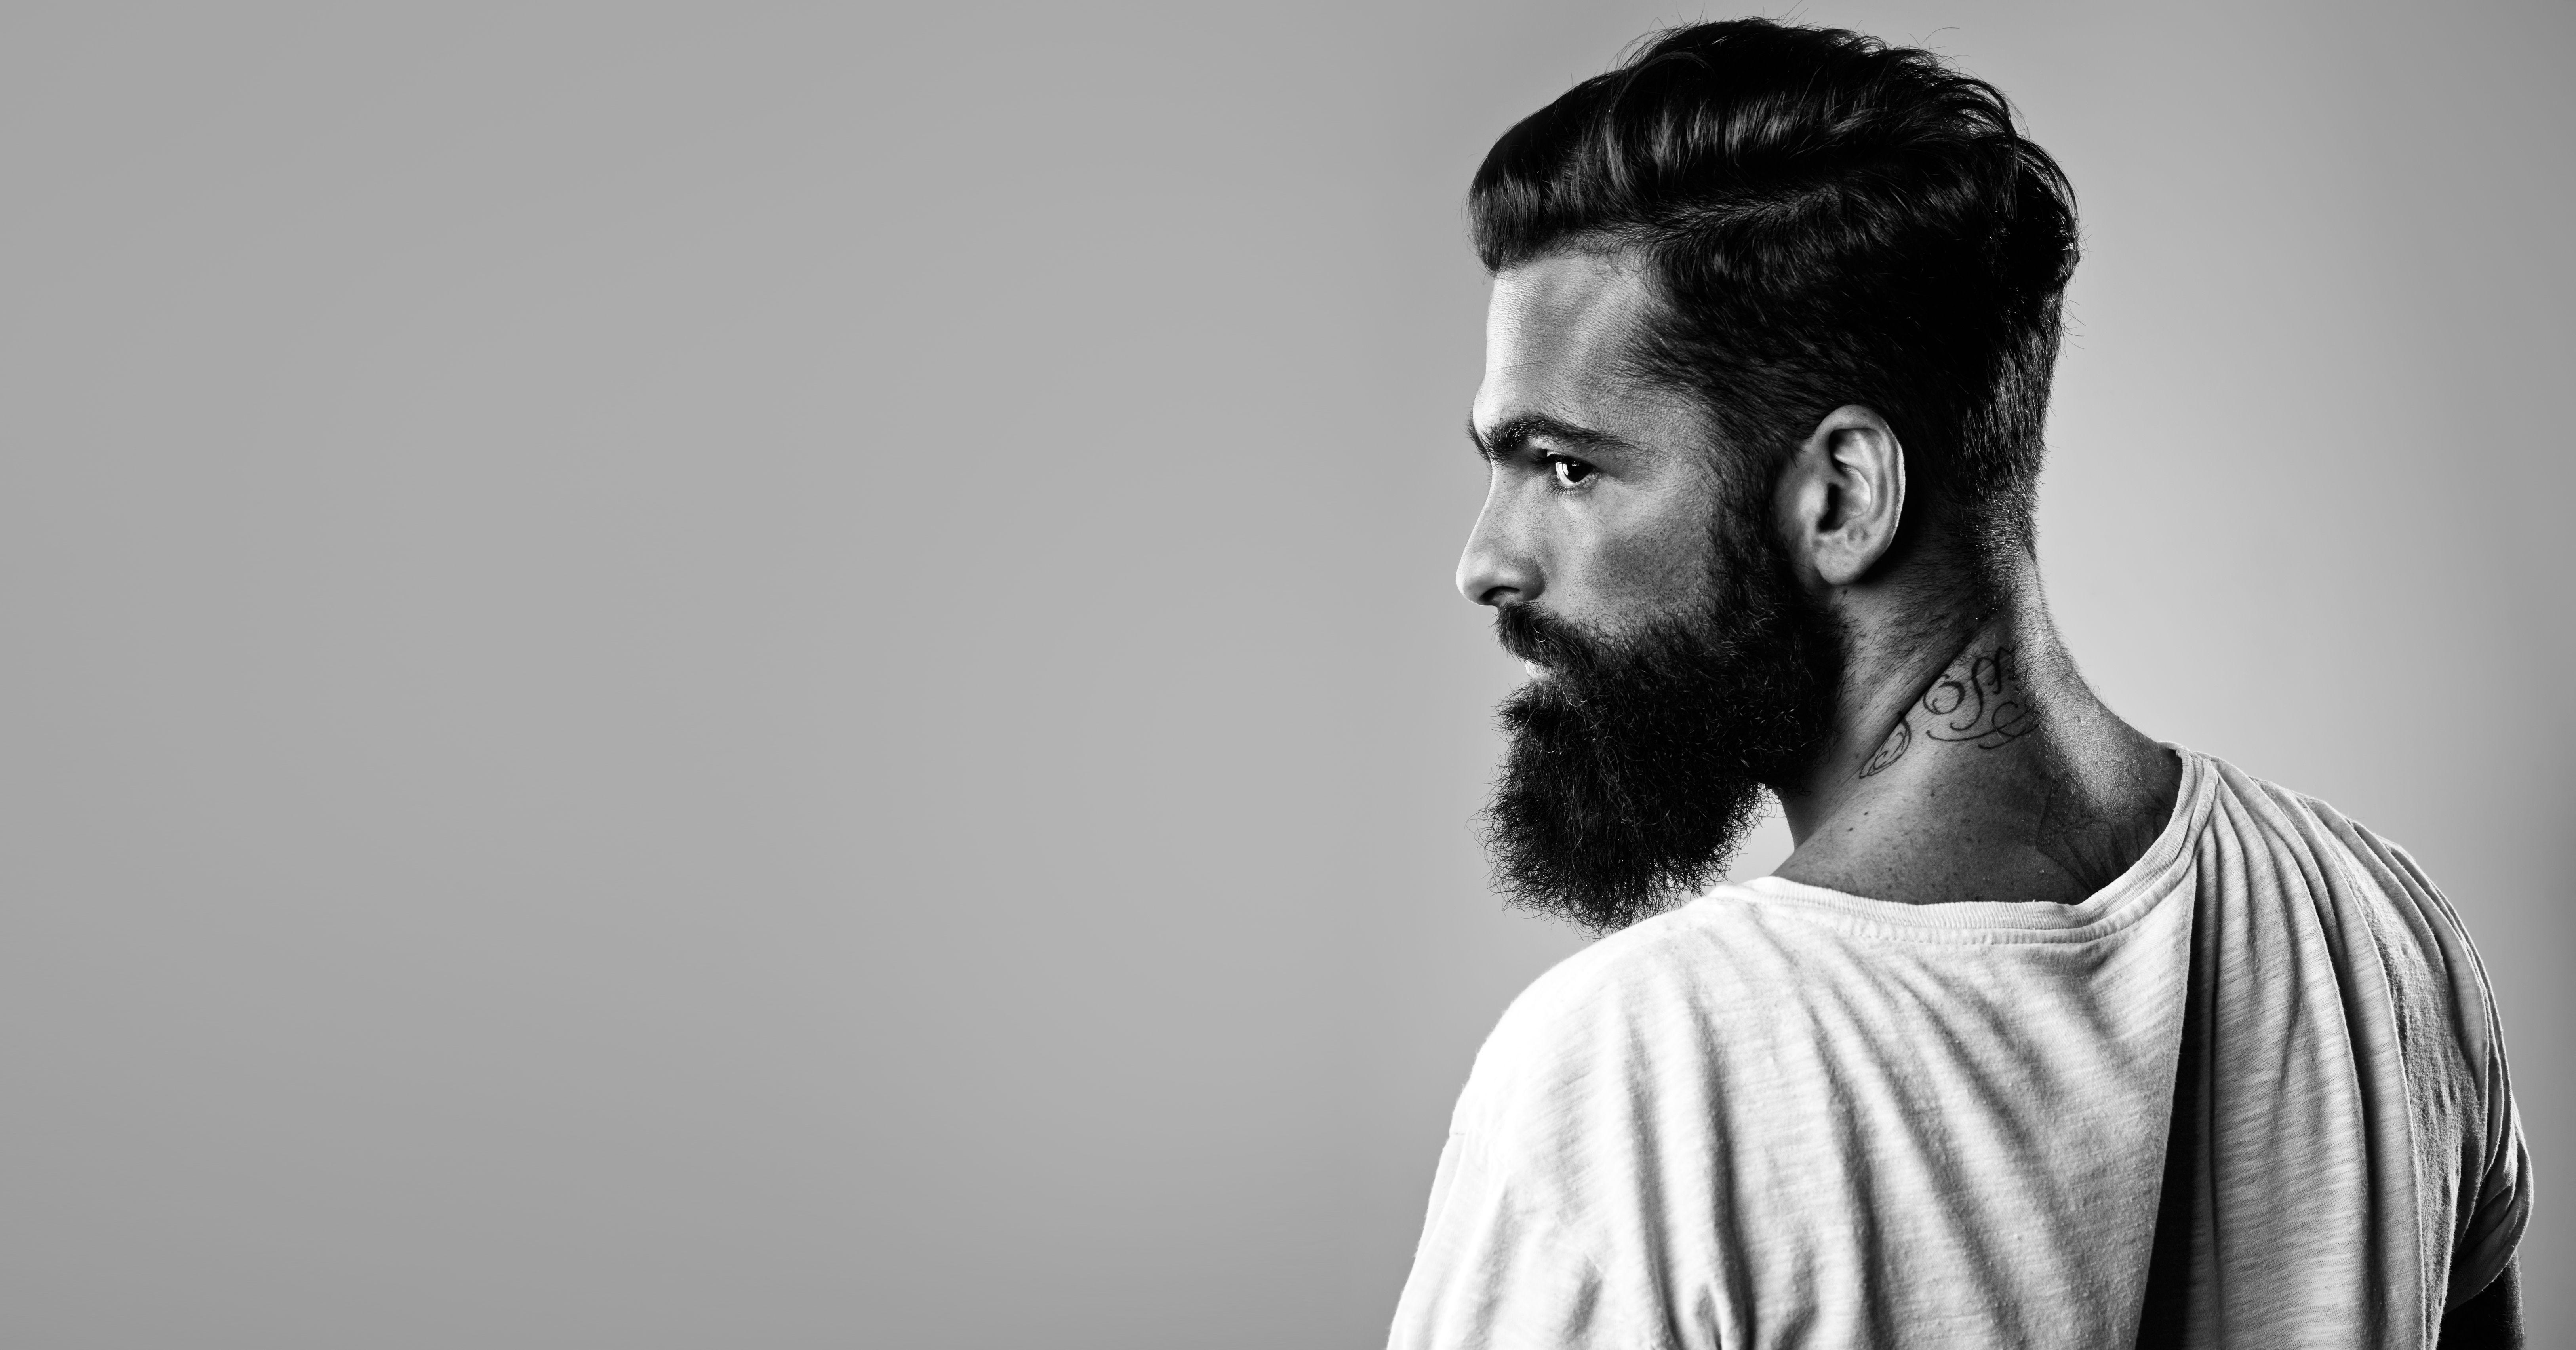 Beard man wallpapers wallpaper cave for Male wallpaper designs